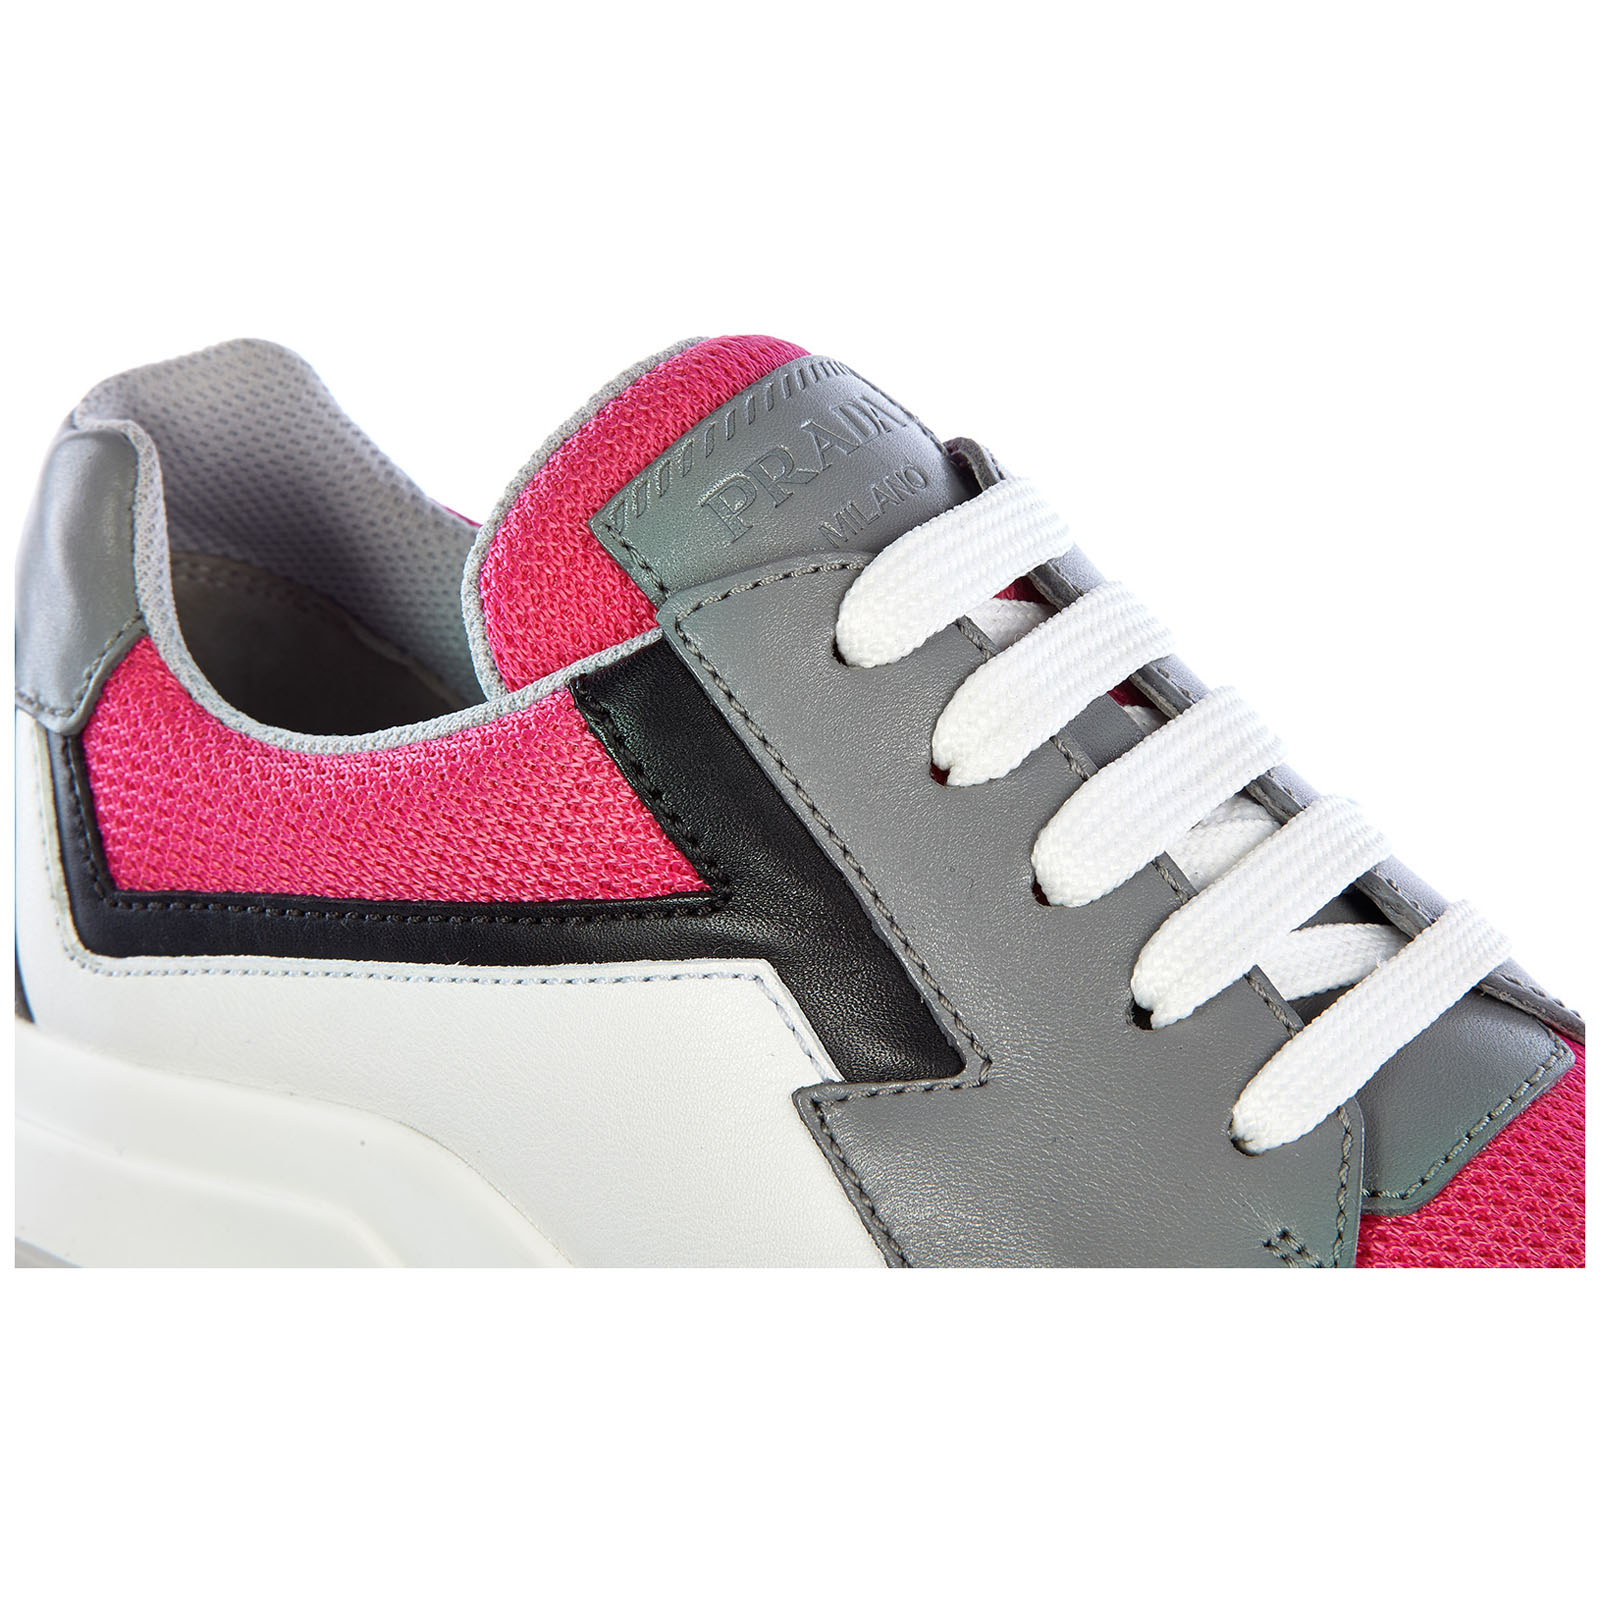 Chaussures baskets sneakers femme en cuir plume bike